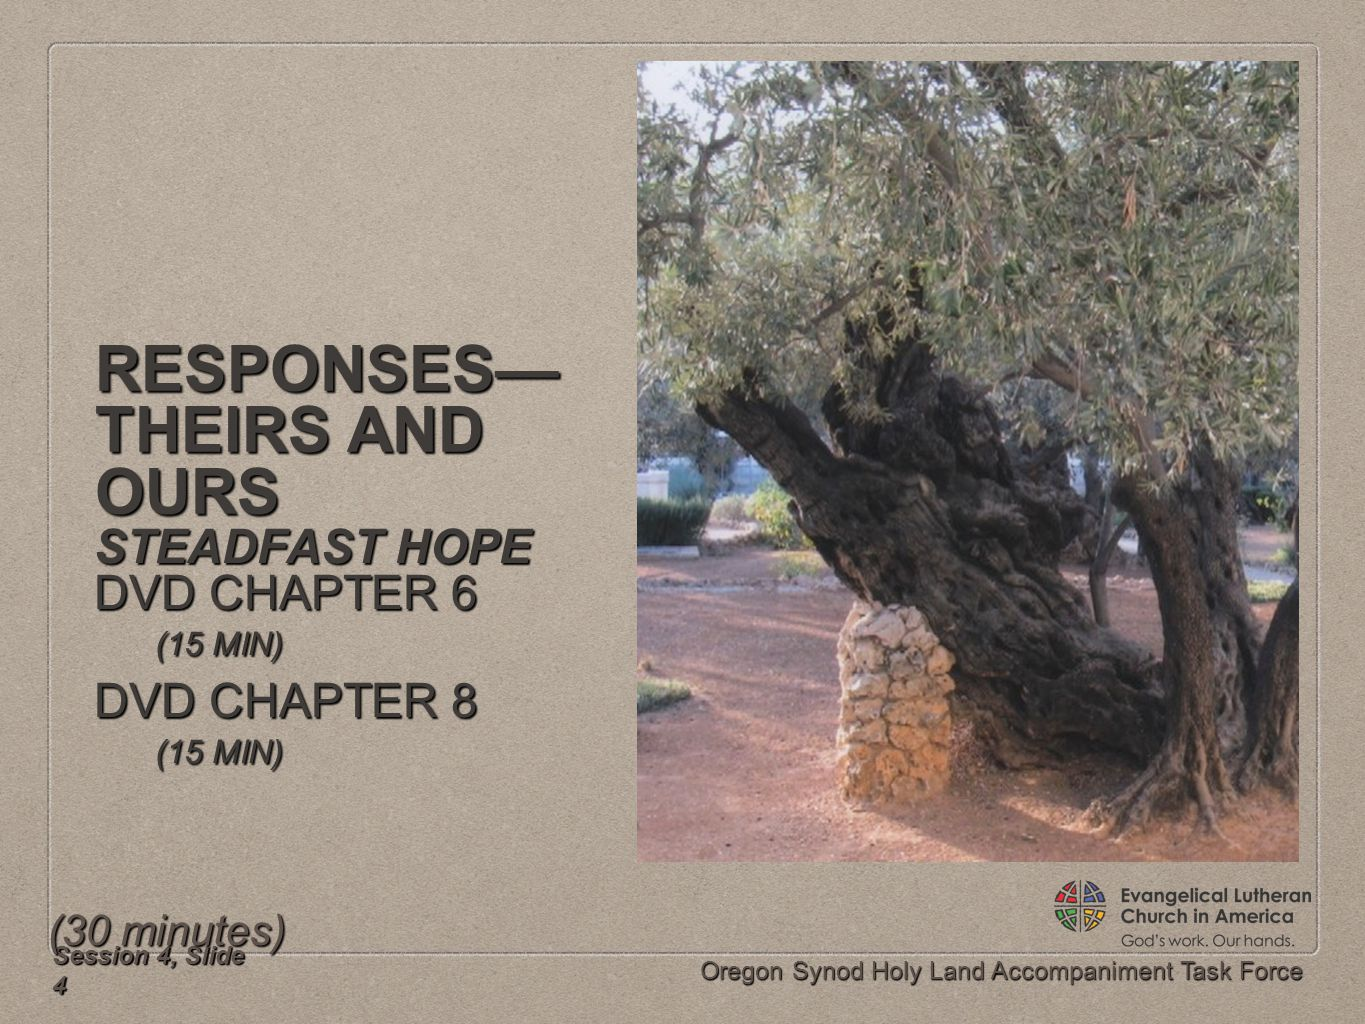 Oregon Synod Holy Land Accompaniment Task Force RESPONSES— THEIRS AND OURS STEADFAST HOPE DVD CHAPTER 6 (15 MIN) DVD CHAPTER 8 (15 MIN) Session 4, Sli